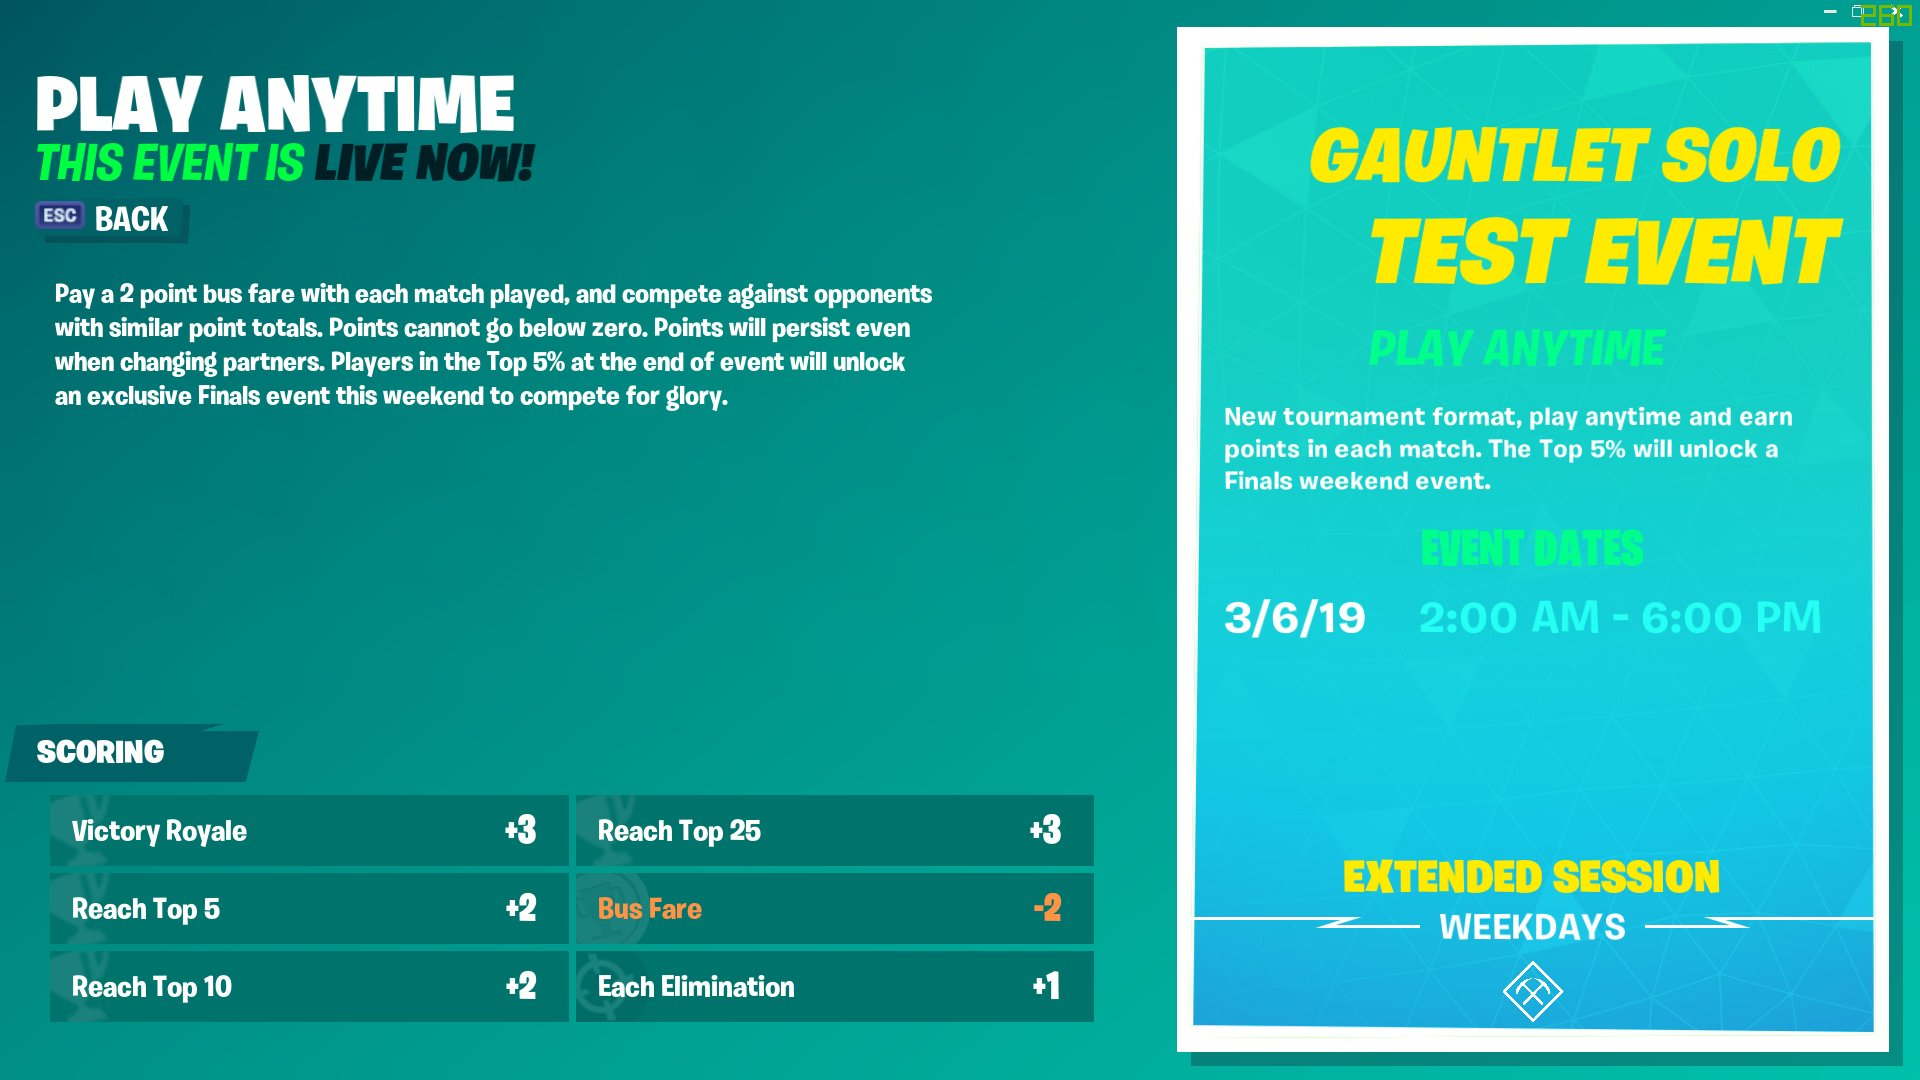 Pay the bus fare to join Fortnite Gauntlet Solo Test Event